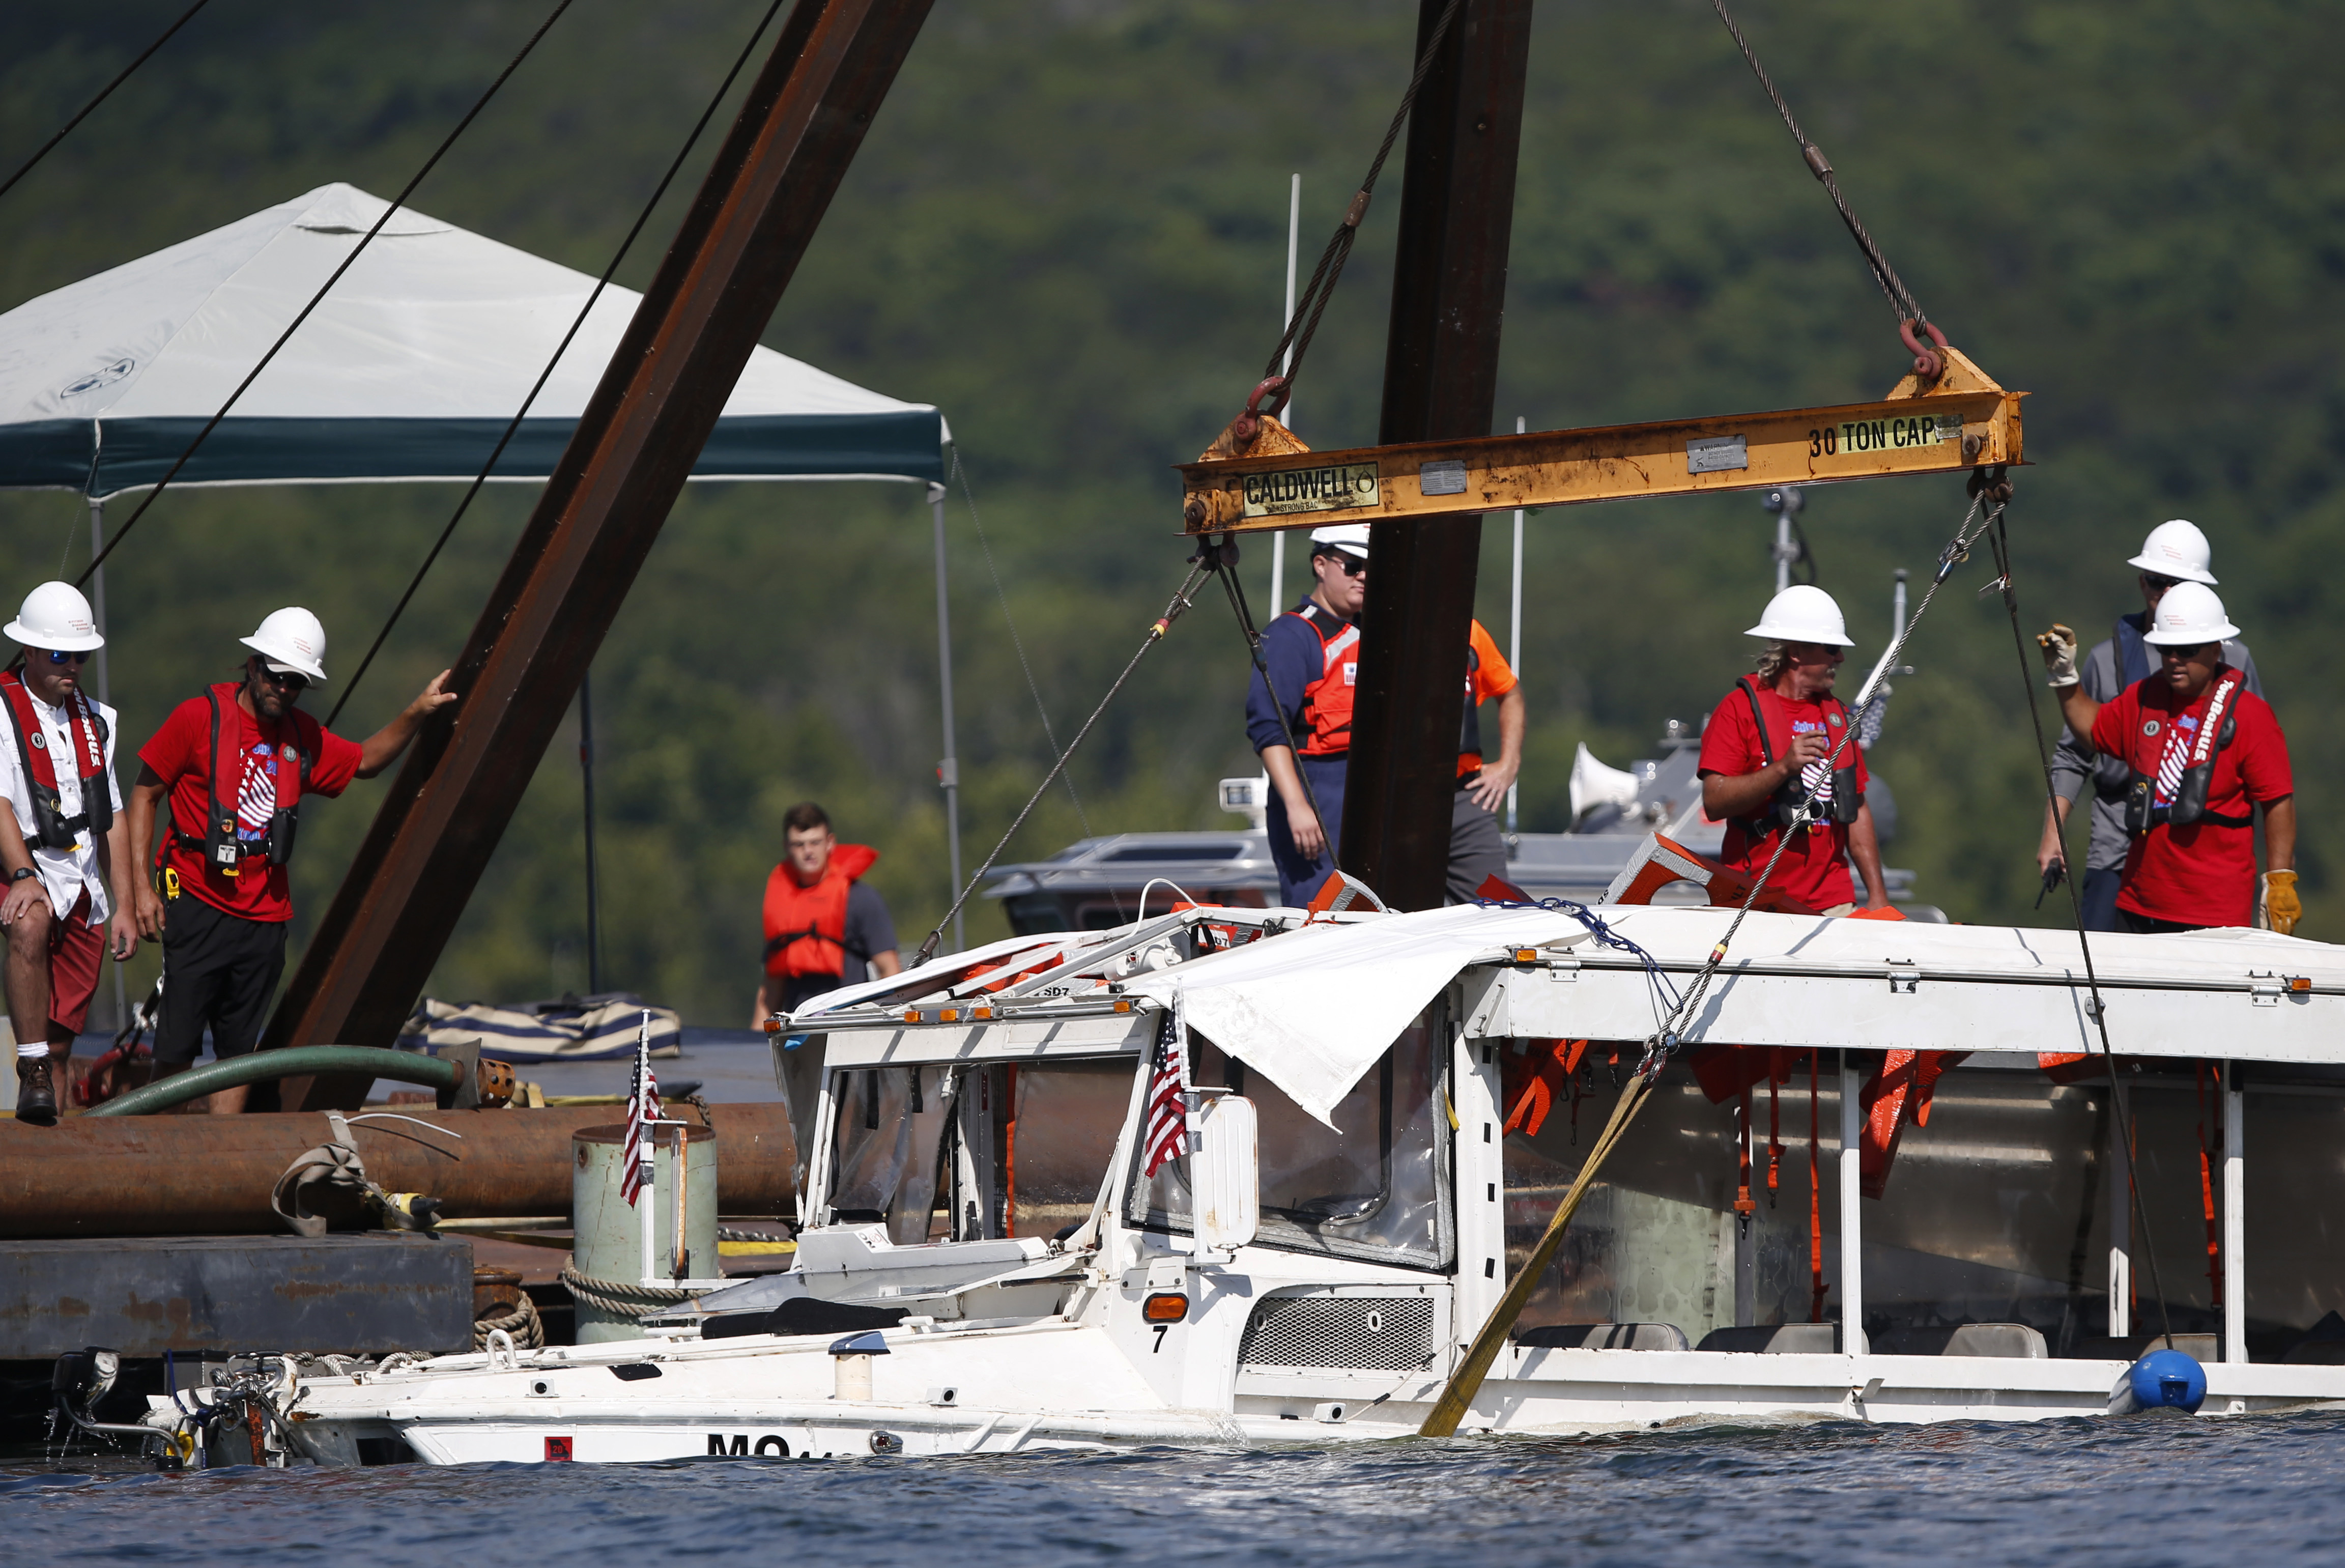 A Closer Look The Duck Boat Tragedy And The Events That Followed Knwa Fox24